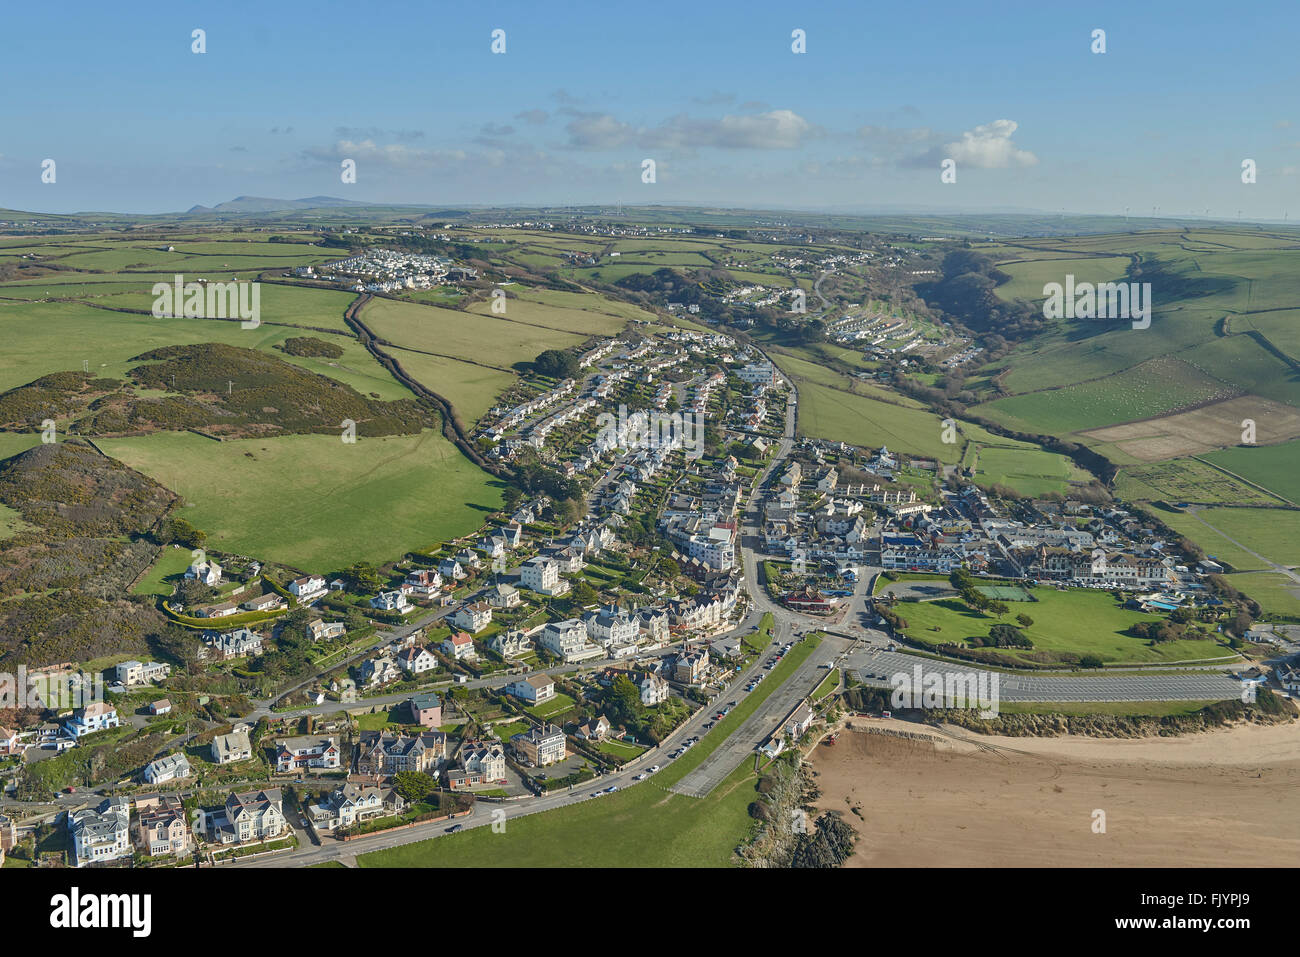 An aerial view of the North Devon seaside resort of Woolacombe - Stock Image